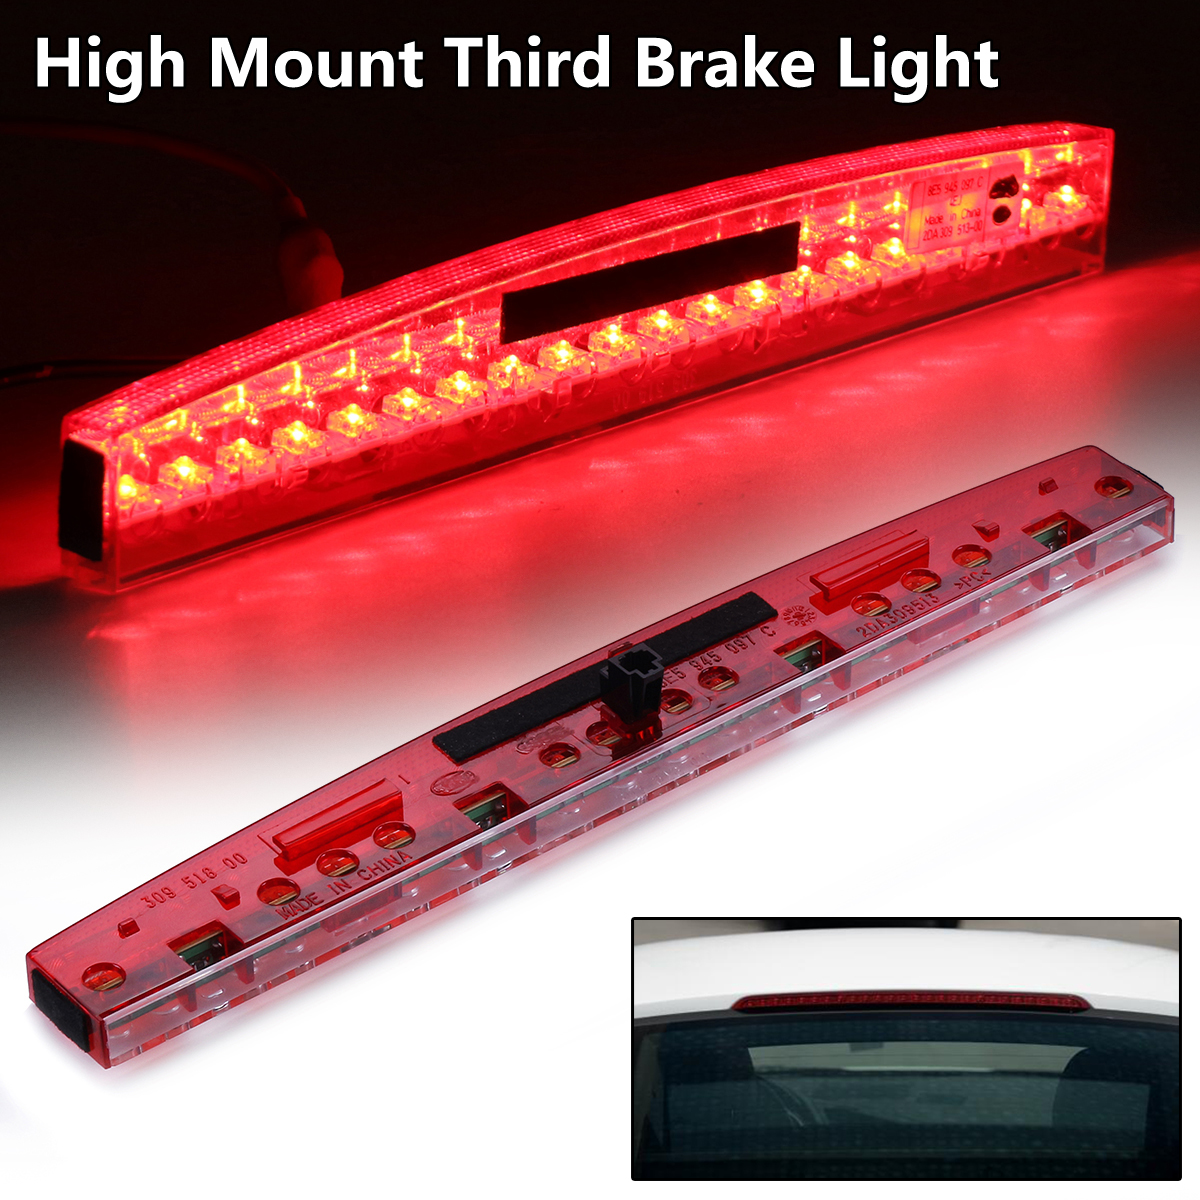 Red Led Car High Mount Third Brake Light Plastic Center Rear Stop Light Durable Taillight For AUDI A4 RS4 S4 B6 B7 2002-2008 цены